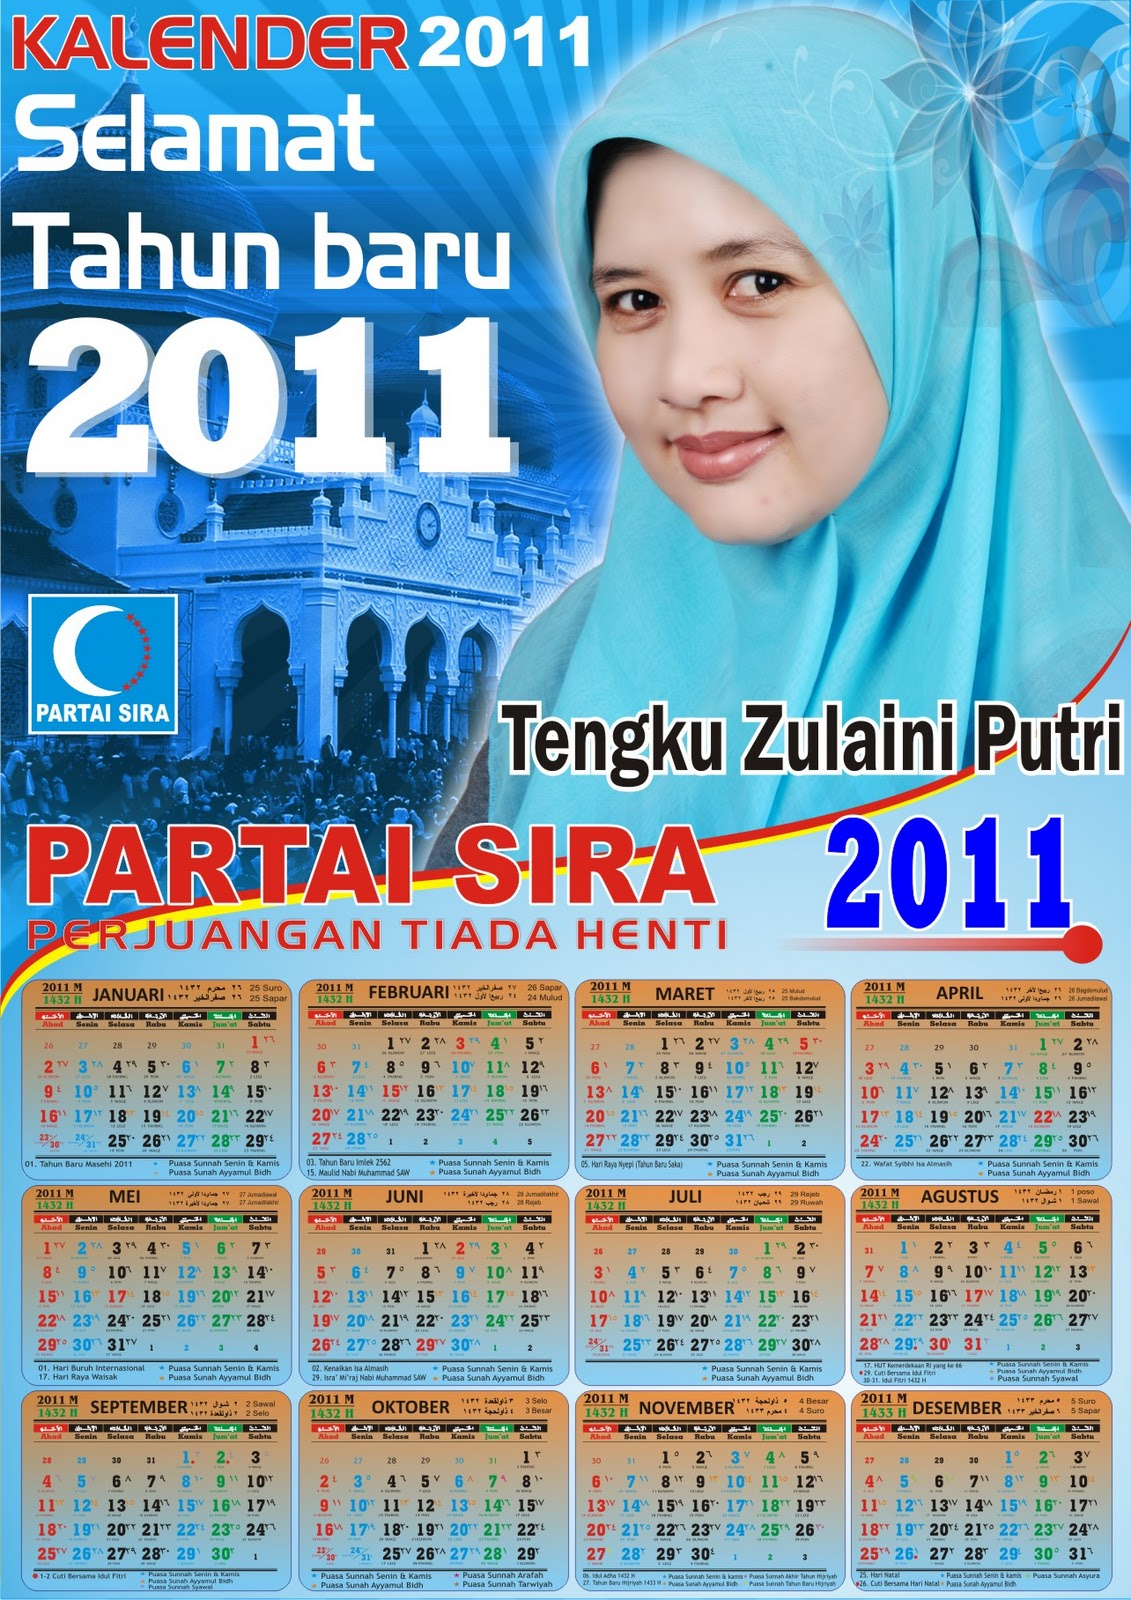 If you like you can download this calendar in coreldraw format CLICK ...